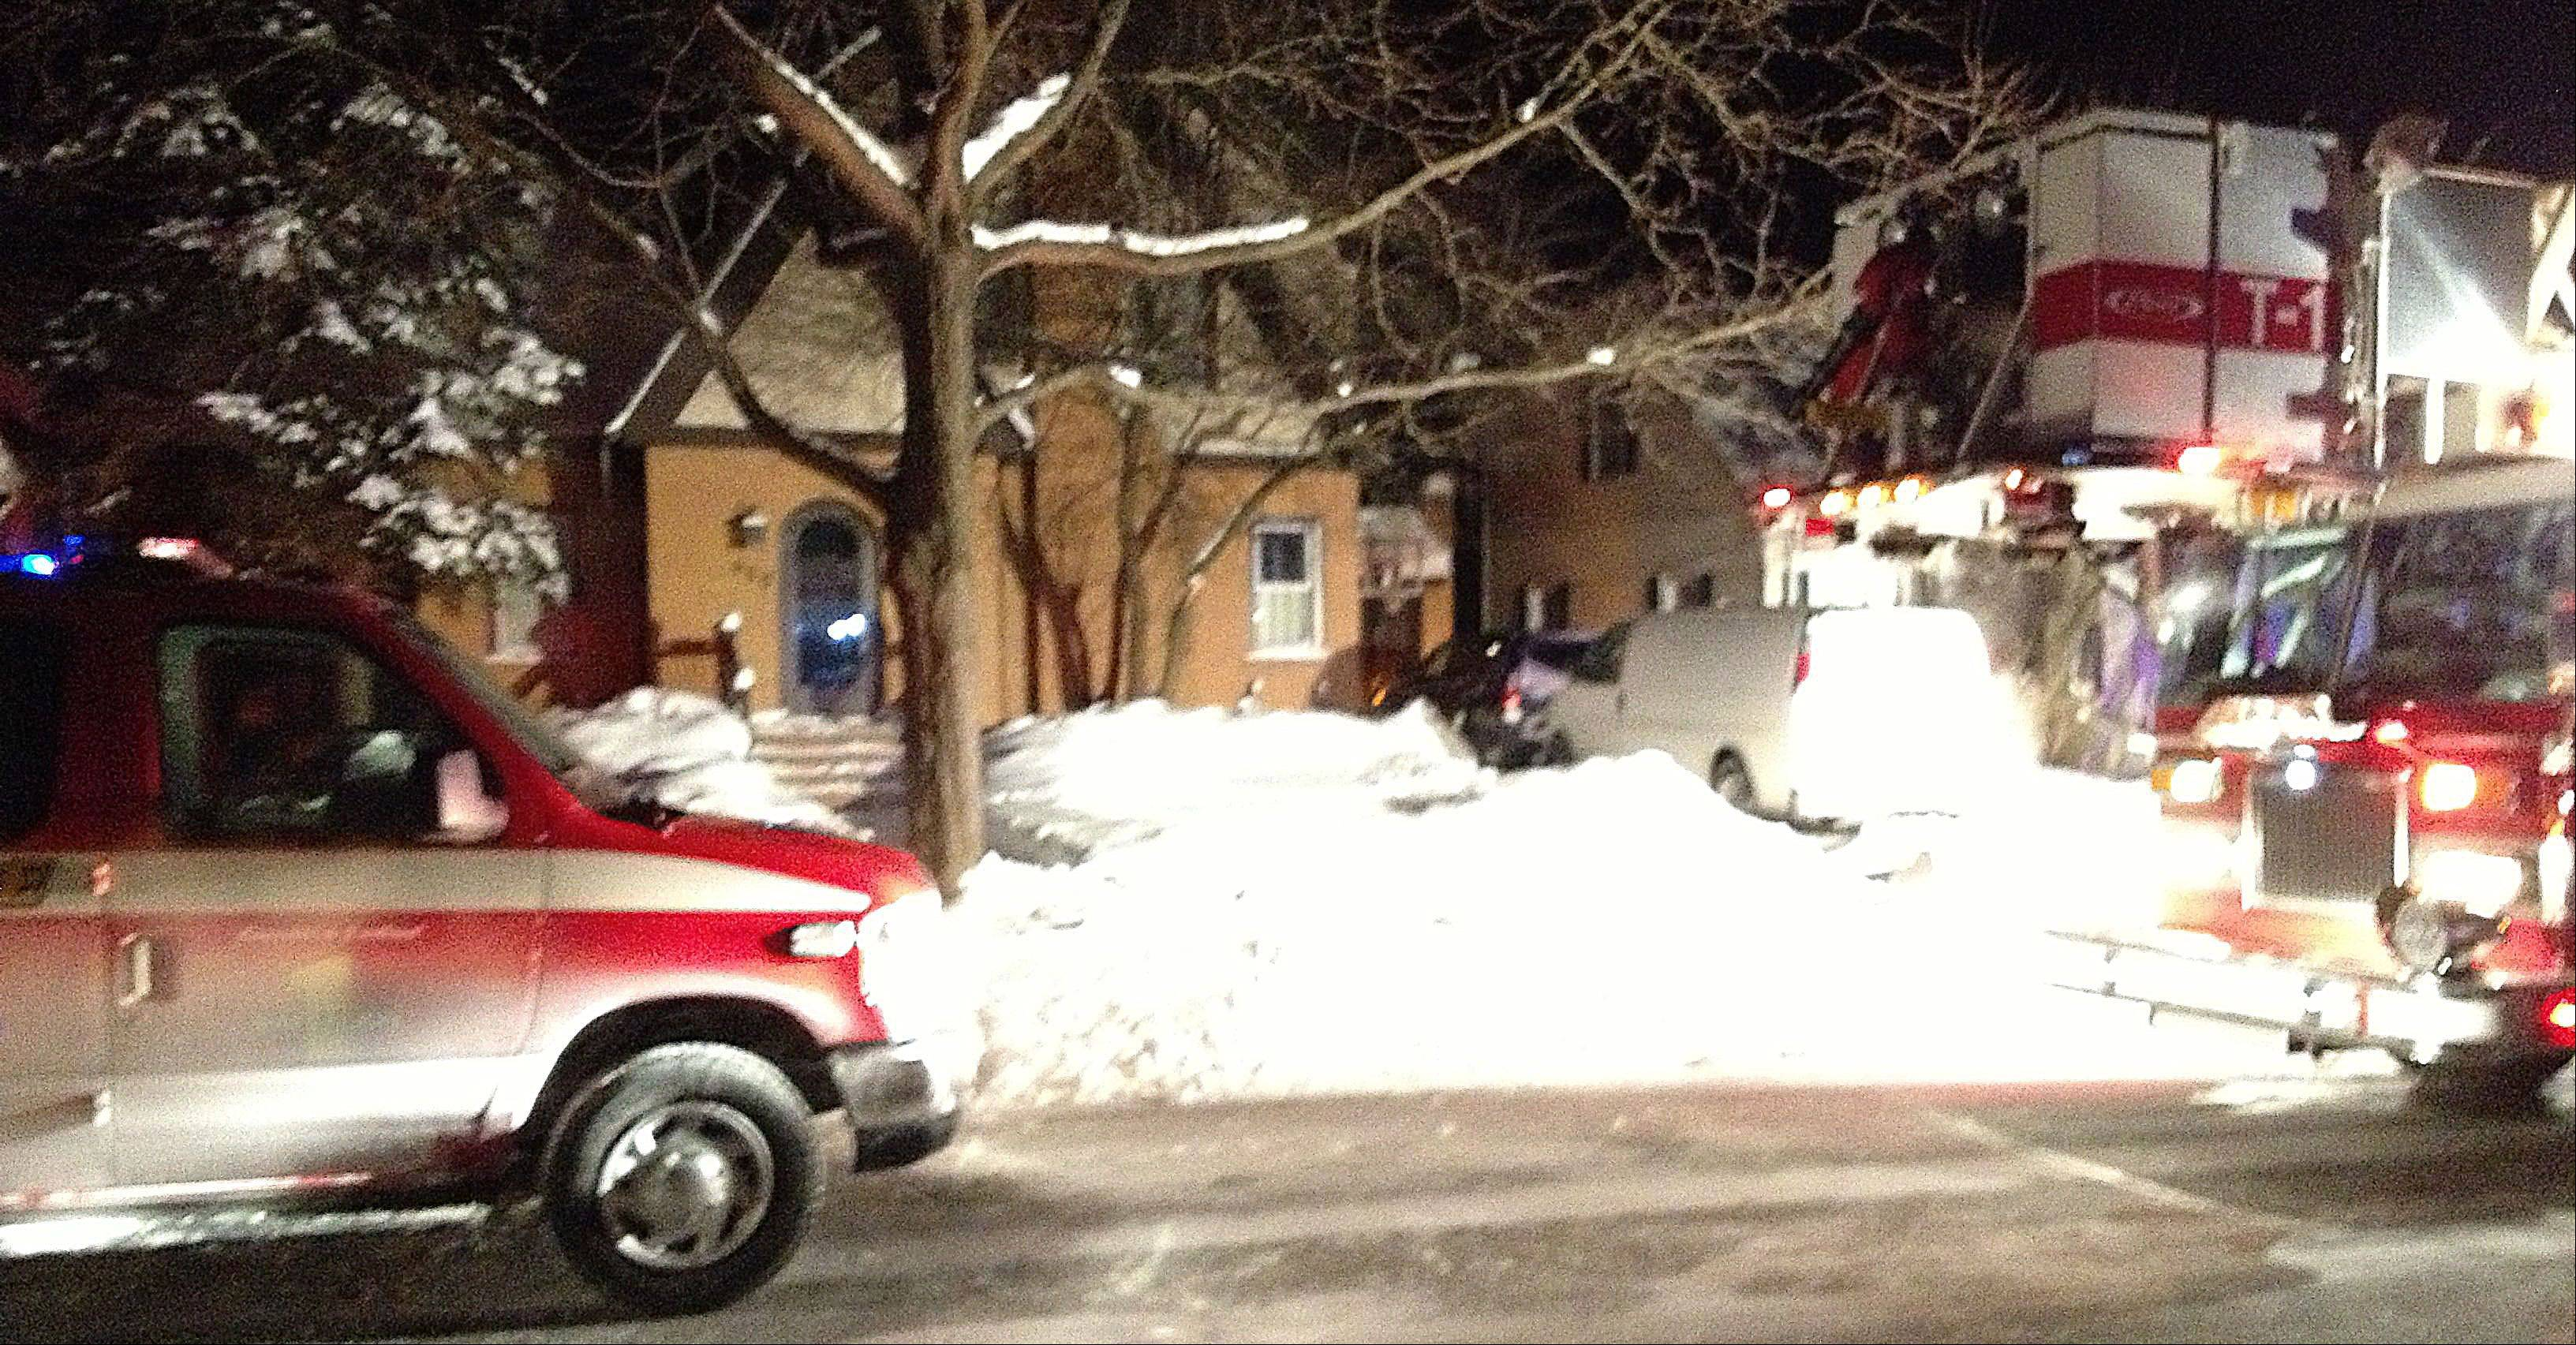 Rescue personnel respond a house fire Tuesday evening on the 400 block of South Dunton in Arlington Heights.